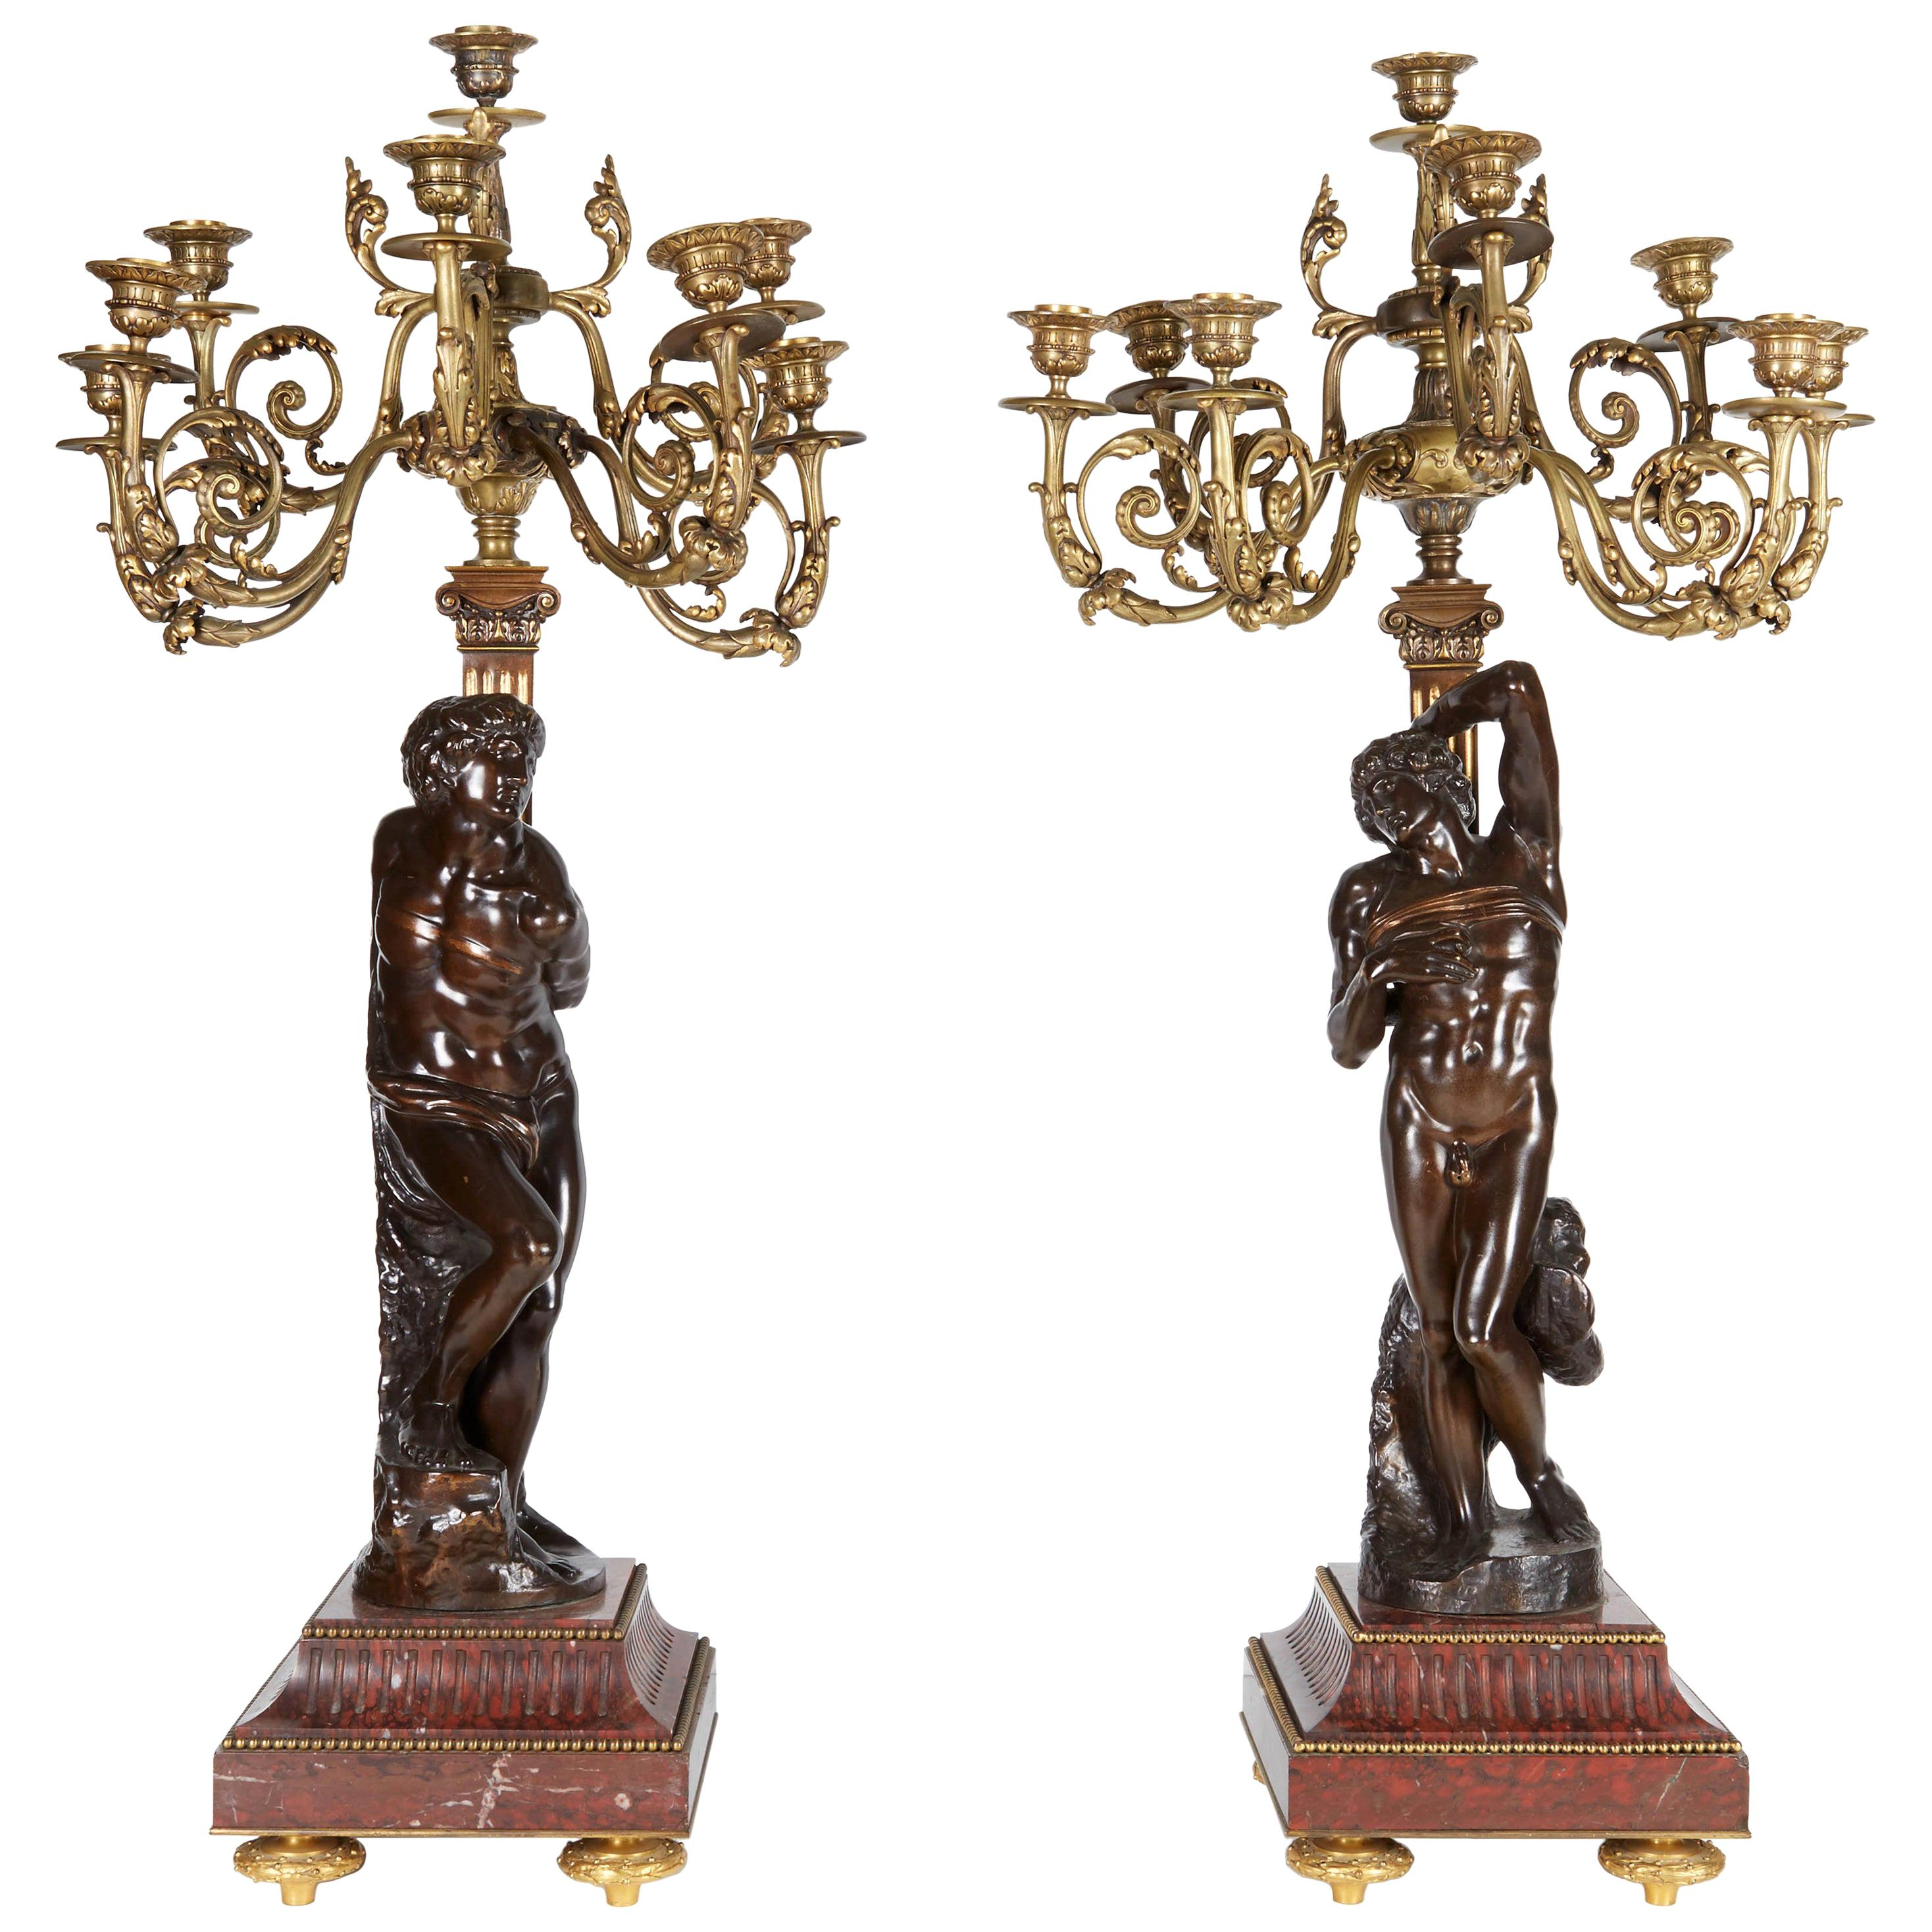 F. Barbedienne Foundry Candle Holders